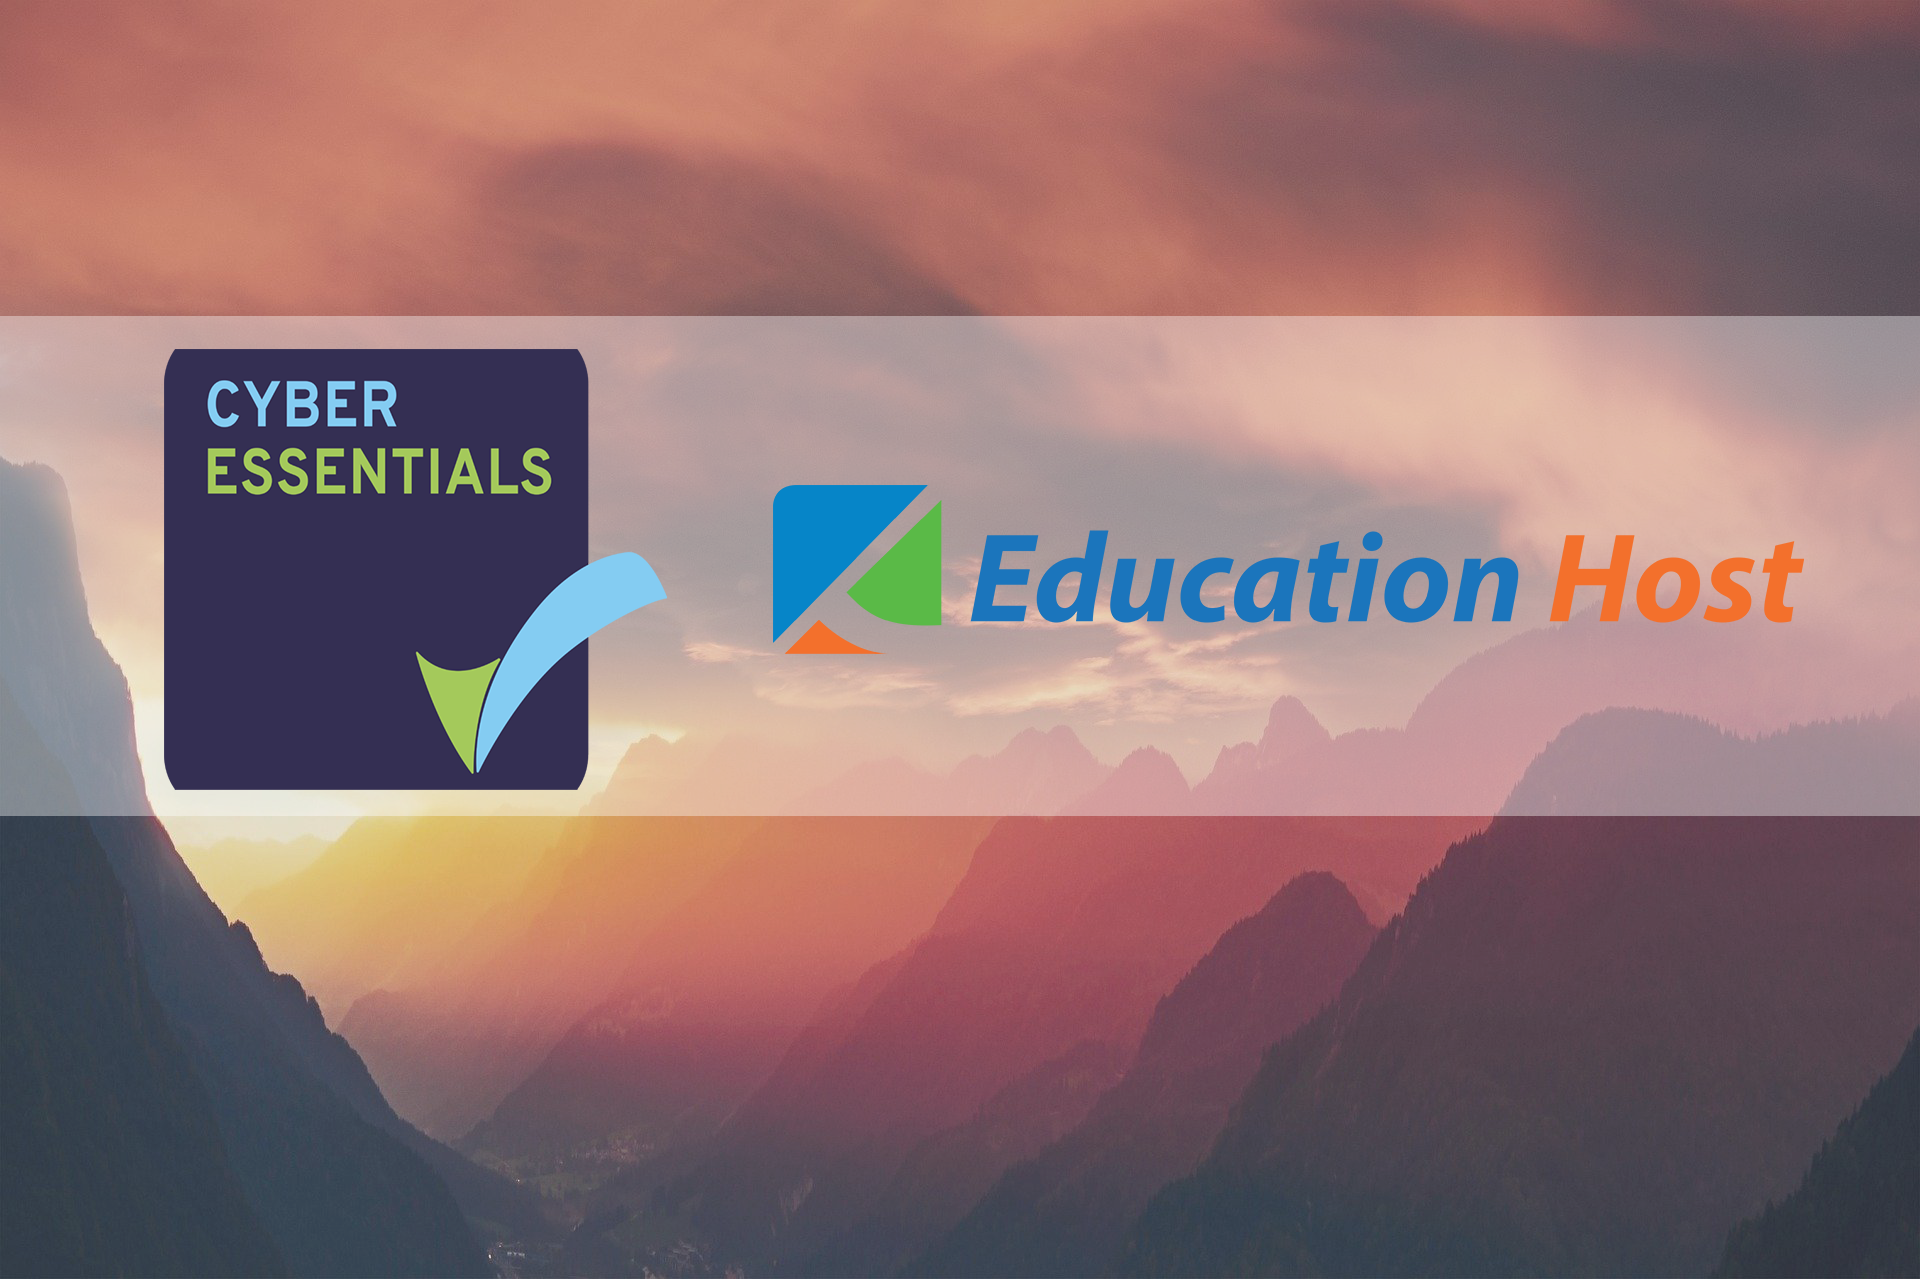 cyber essentials education host